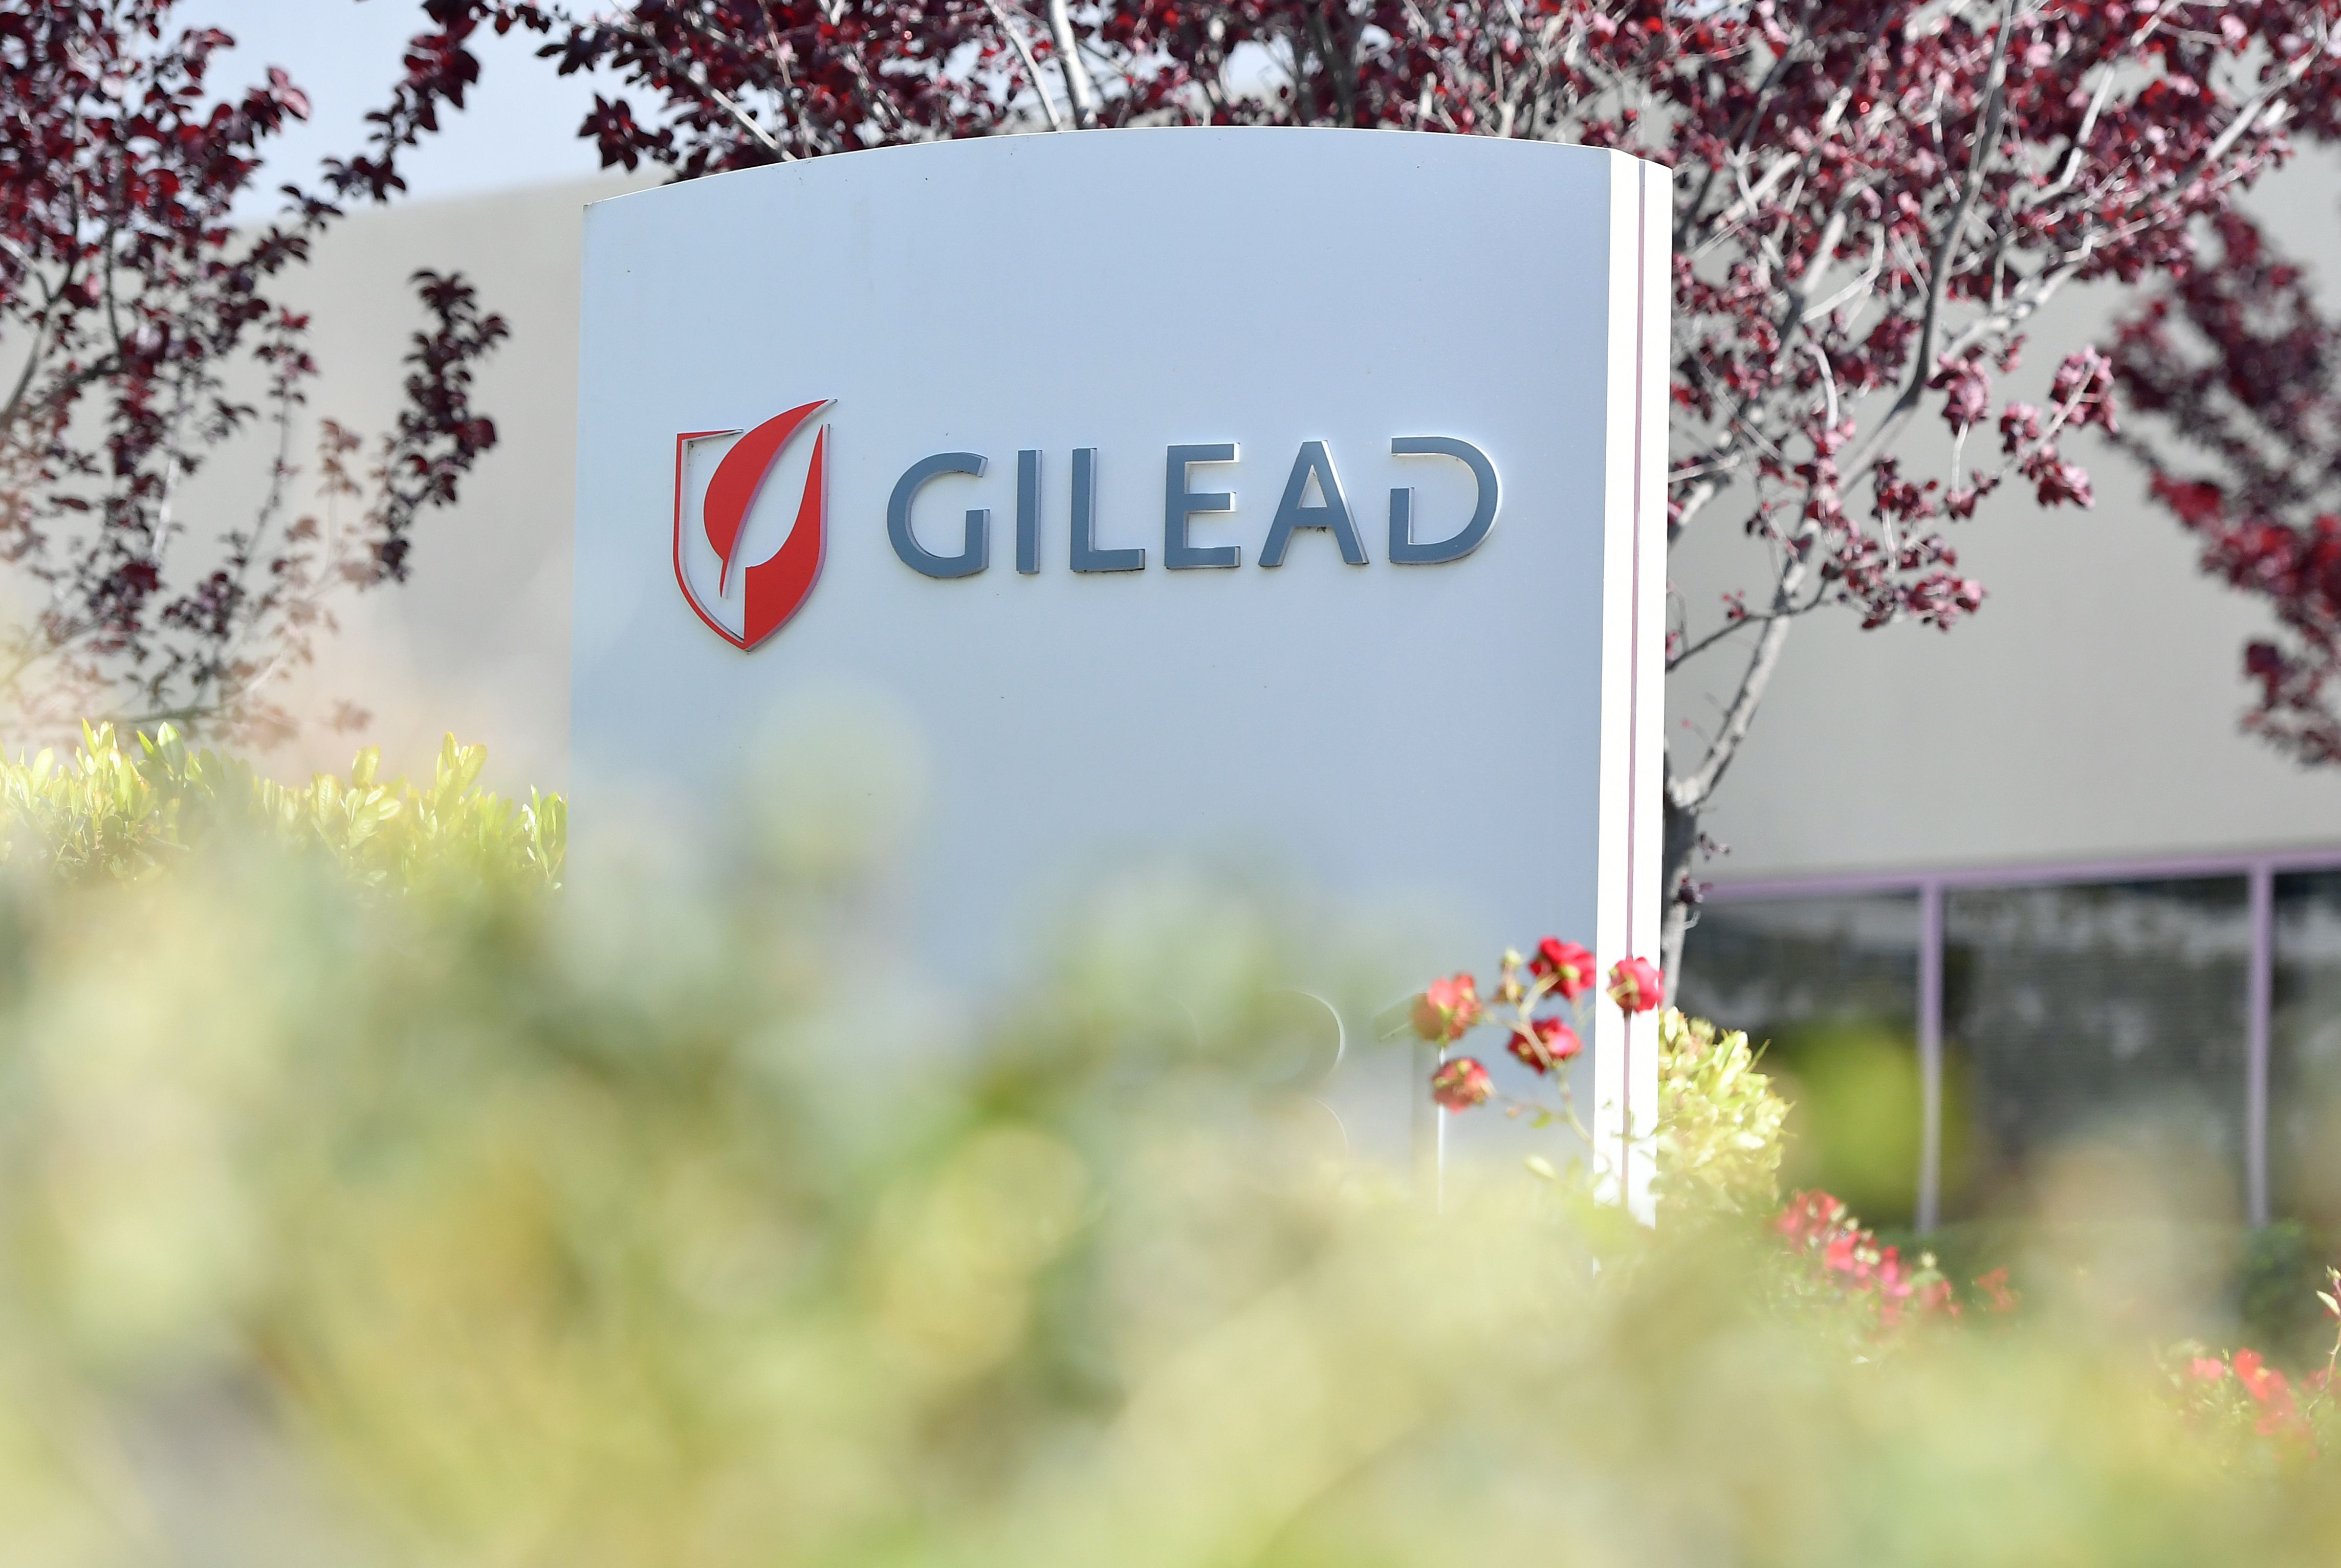 A Gilead Sciences sign is seen at the company's headquarters   in Foster City, California on April 30, 2020.